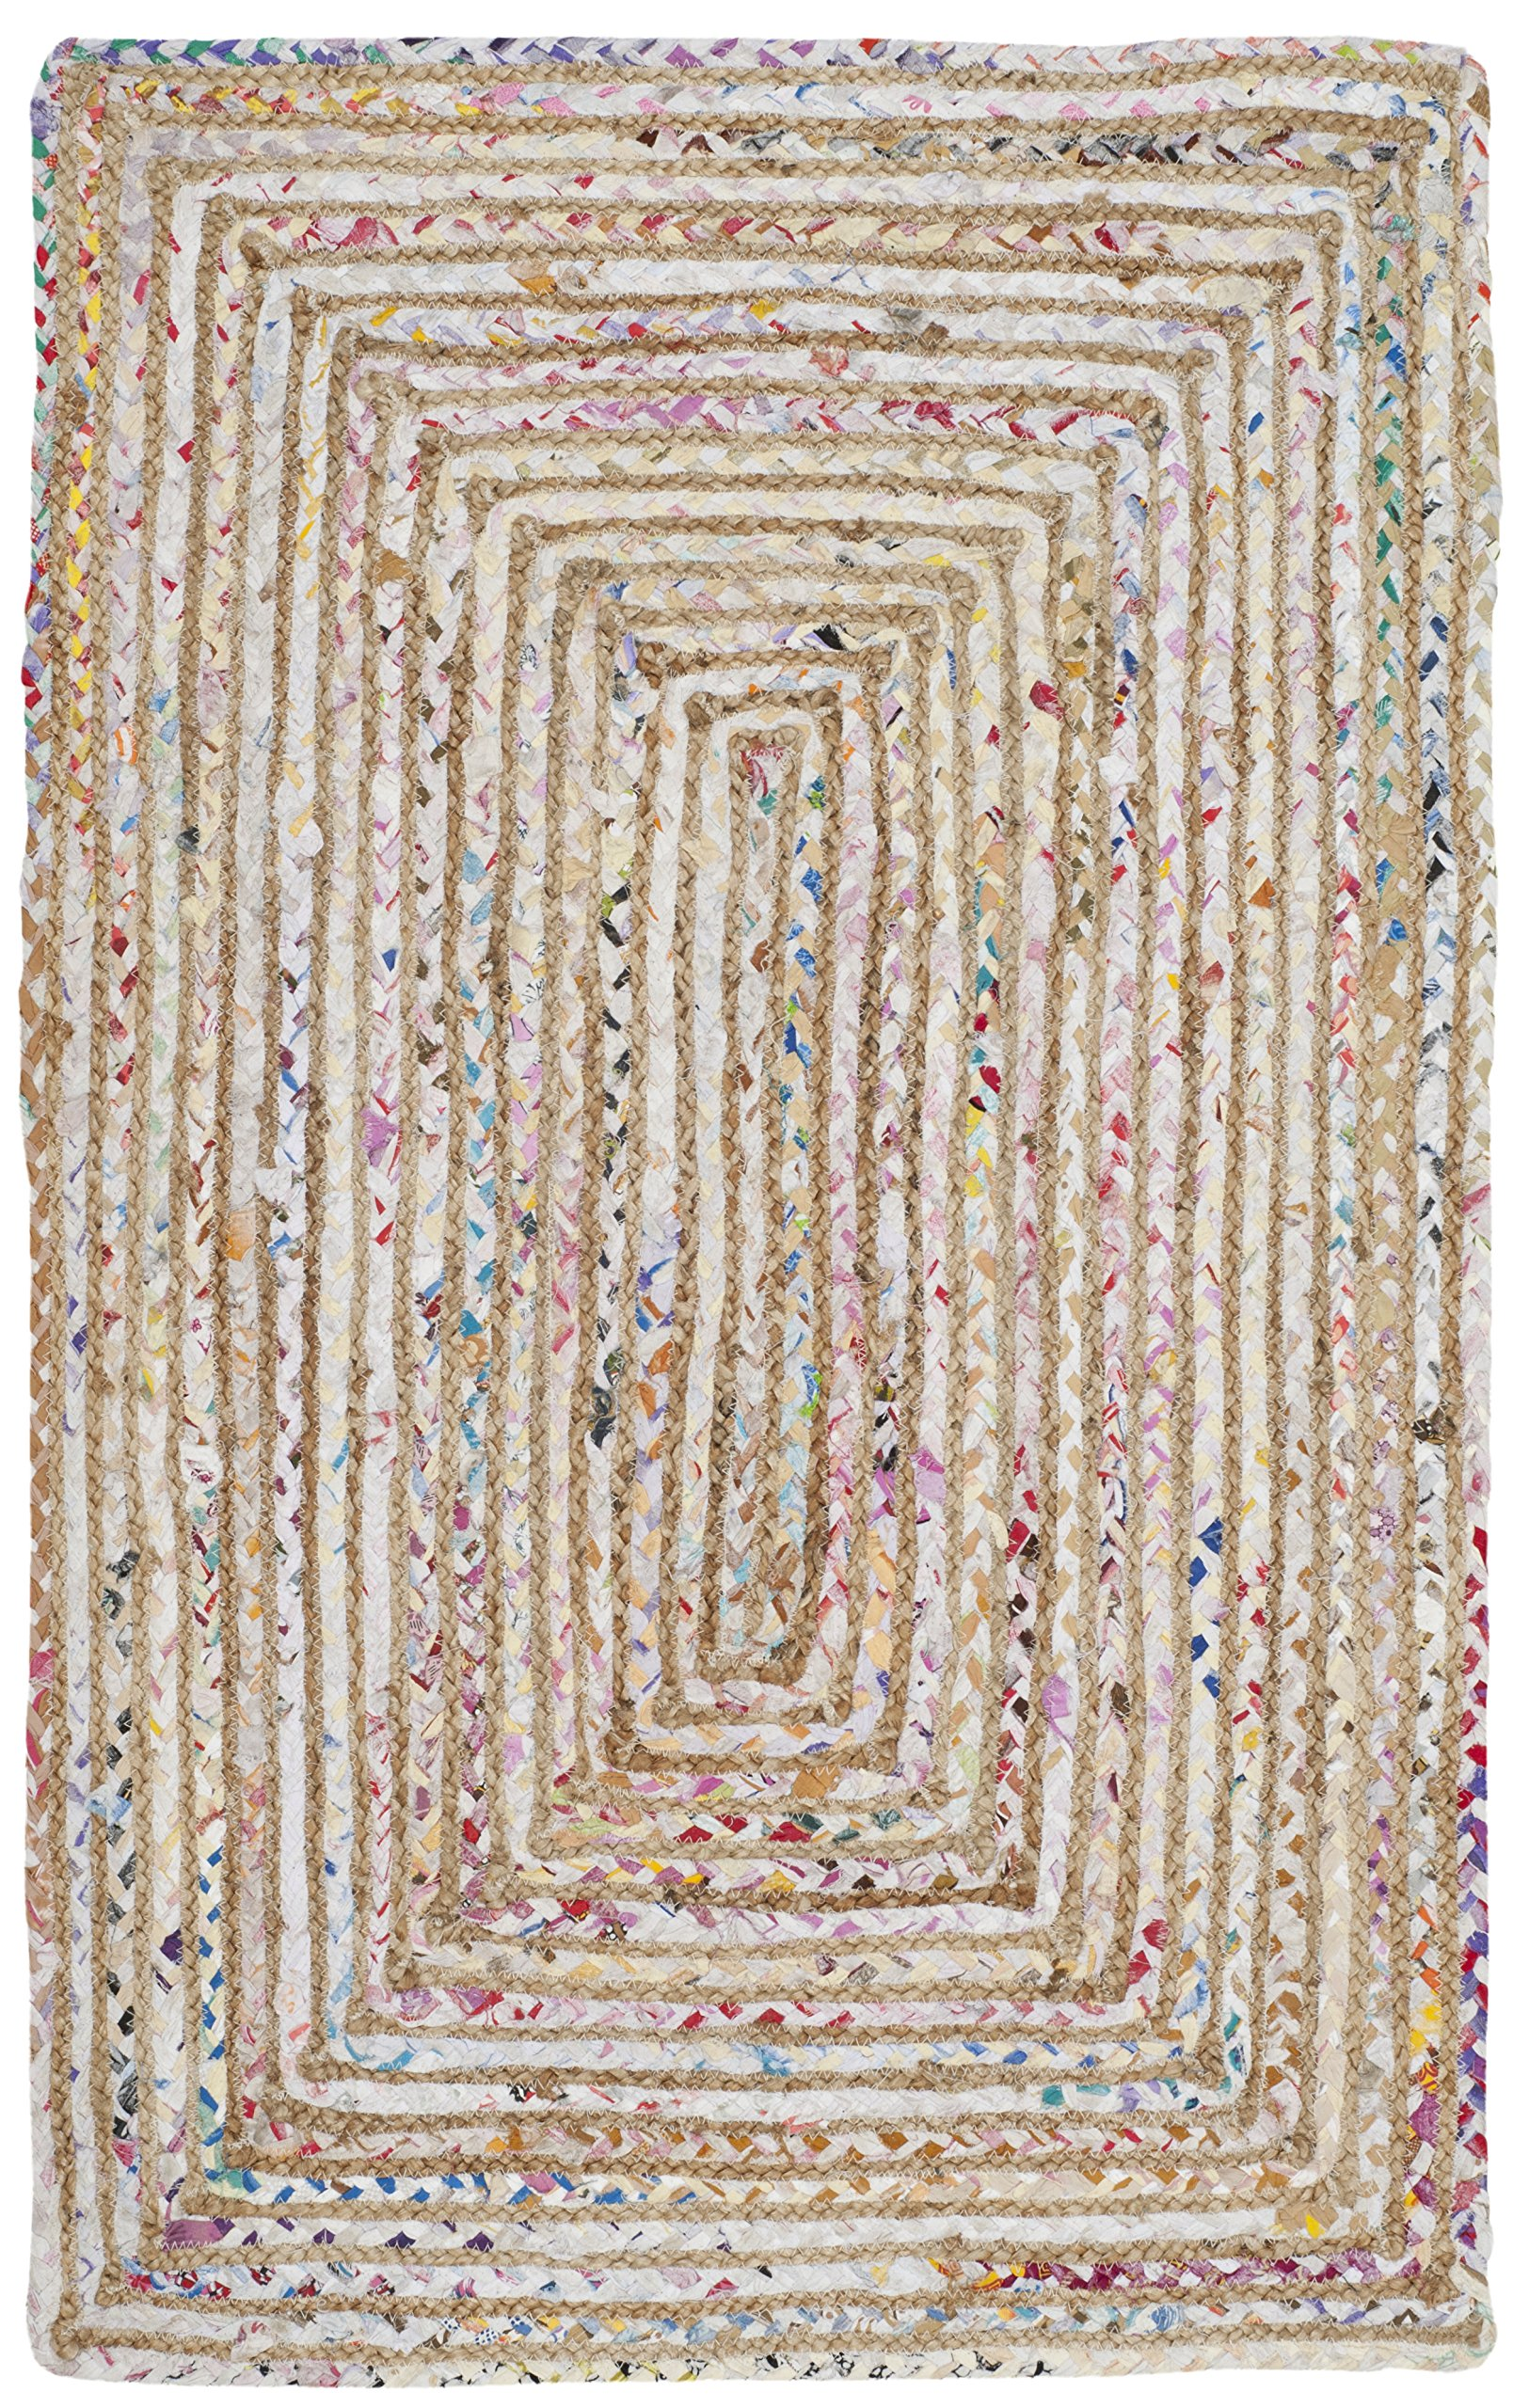 Safavieh Cape Cod Collection CAP202B Handmade Beige and Multicolored Jute Runner (2'3 x 4')